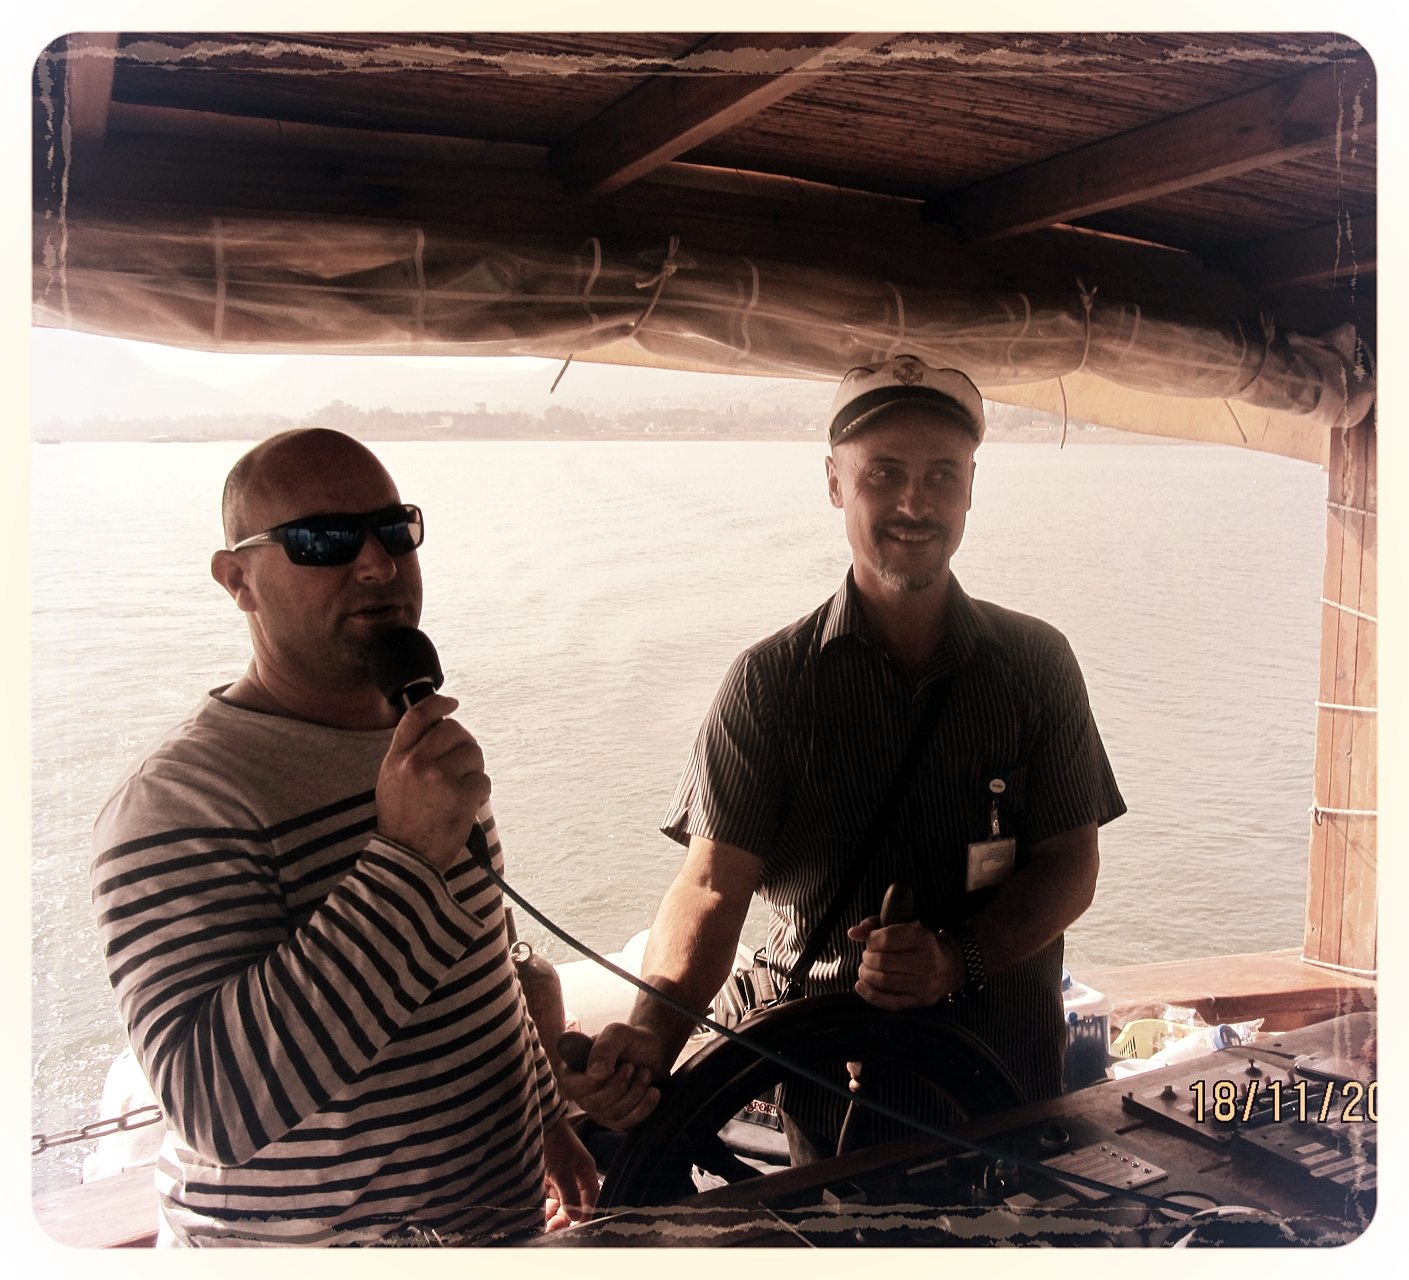 Boat ride on the Lake of Galilee, 2015